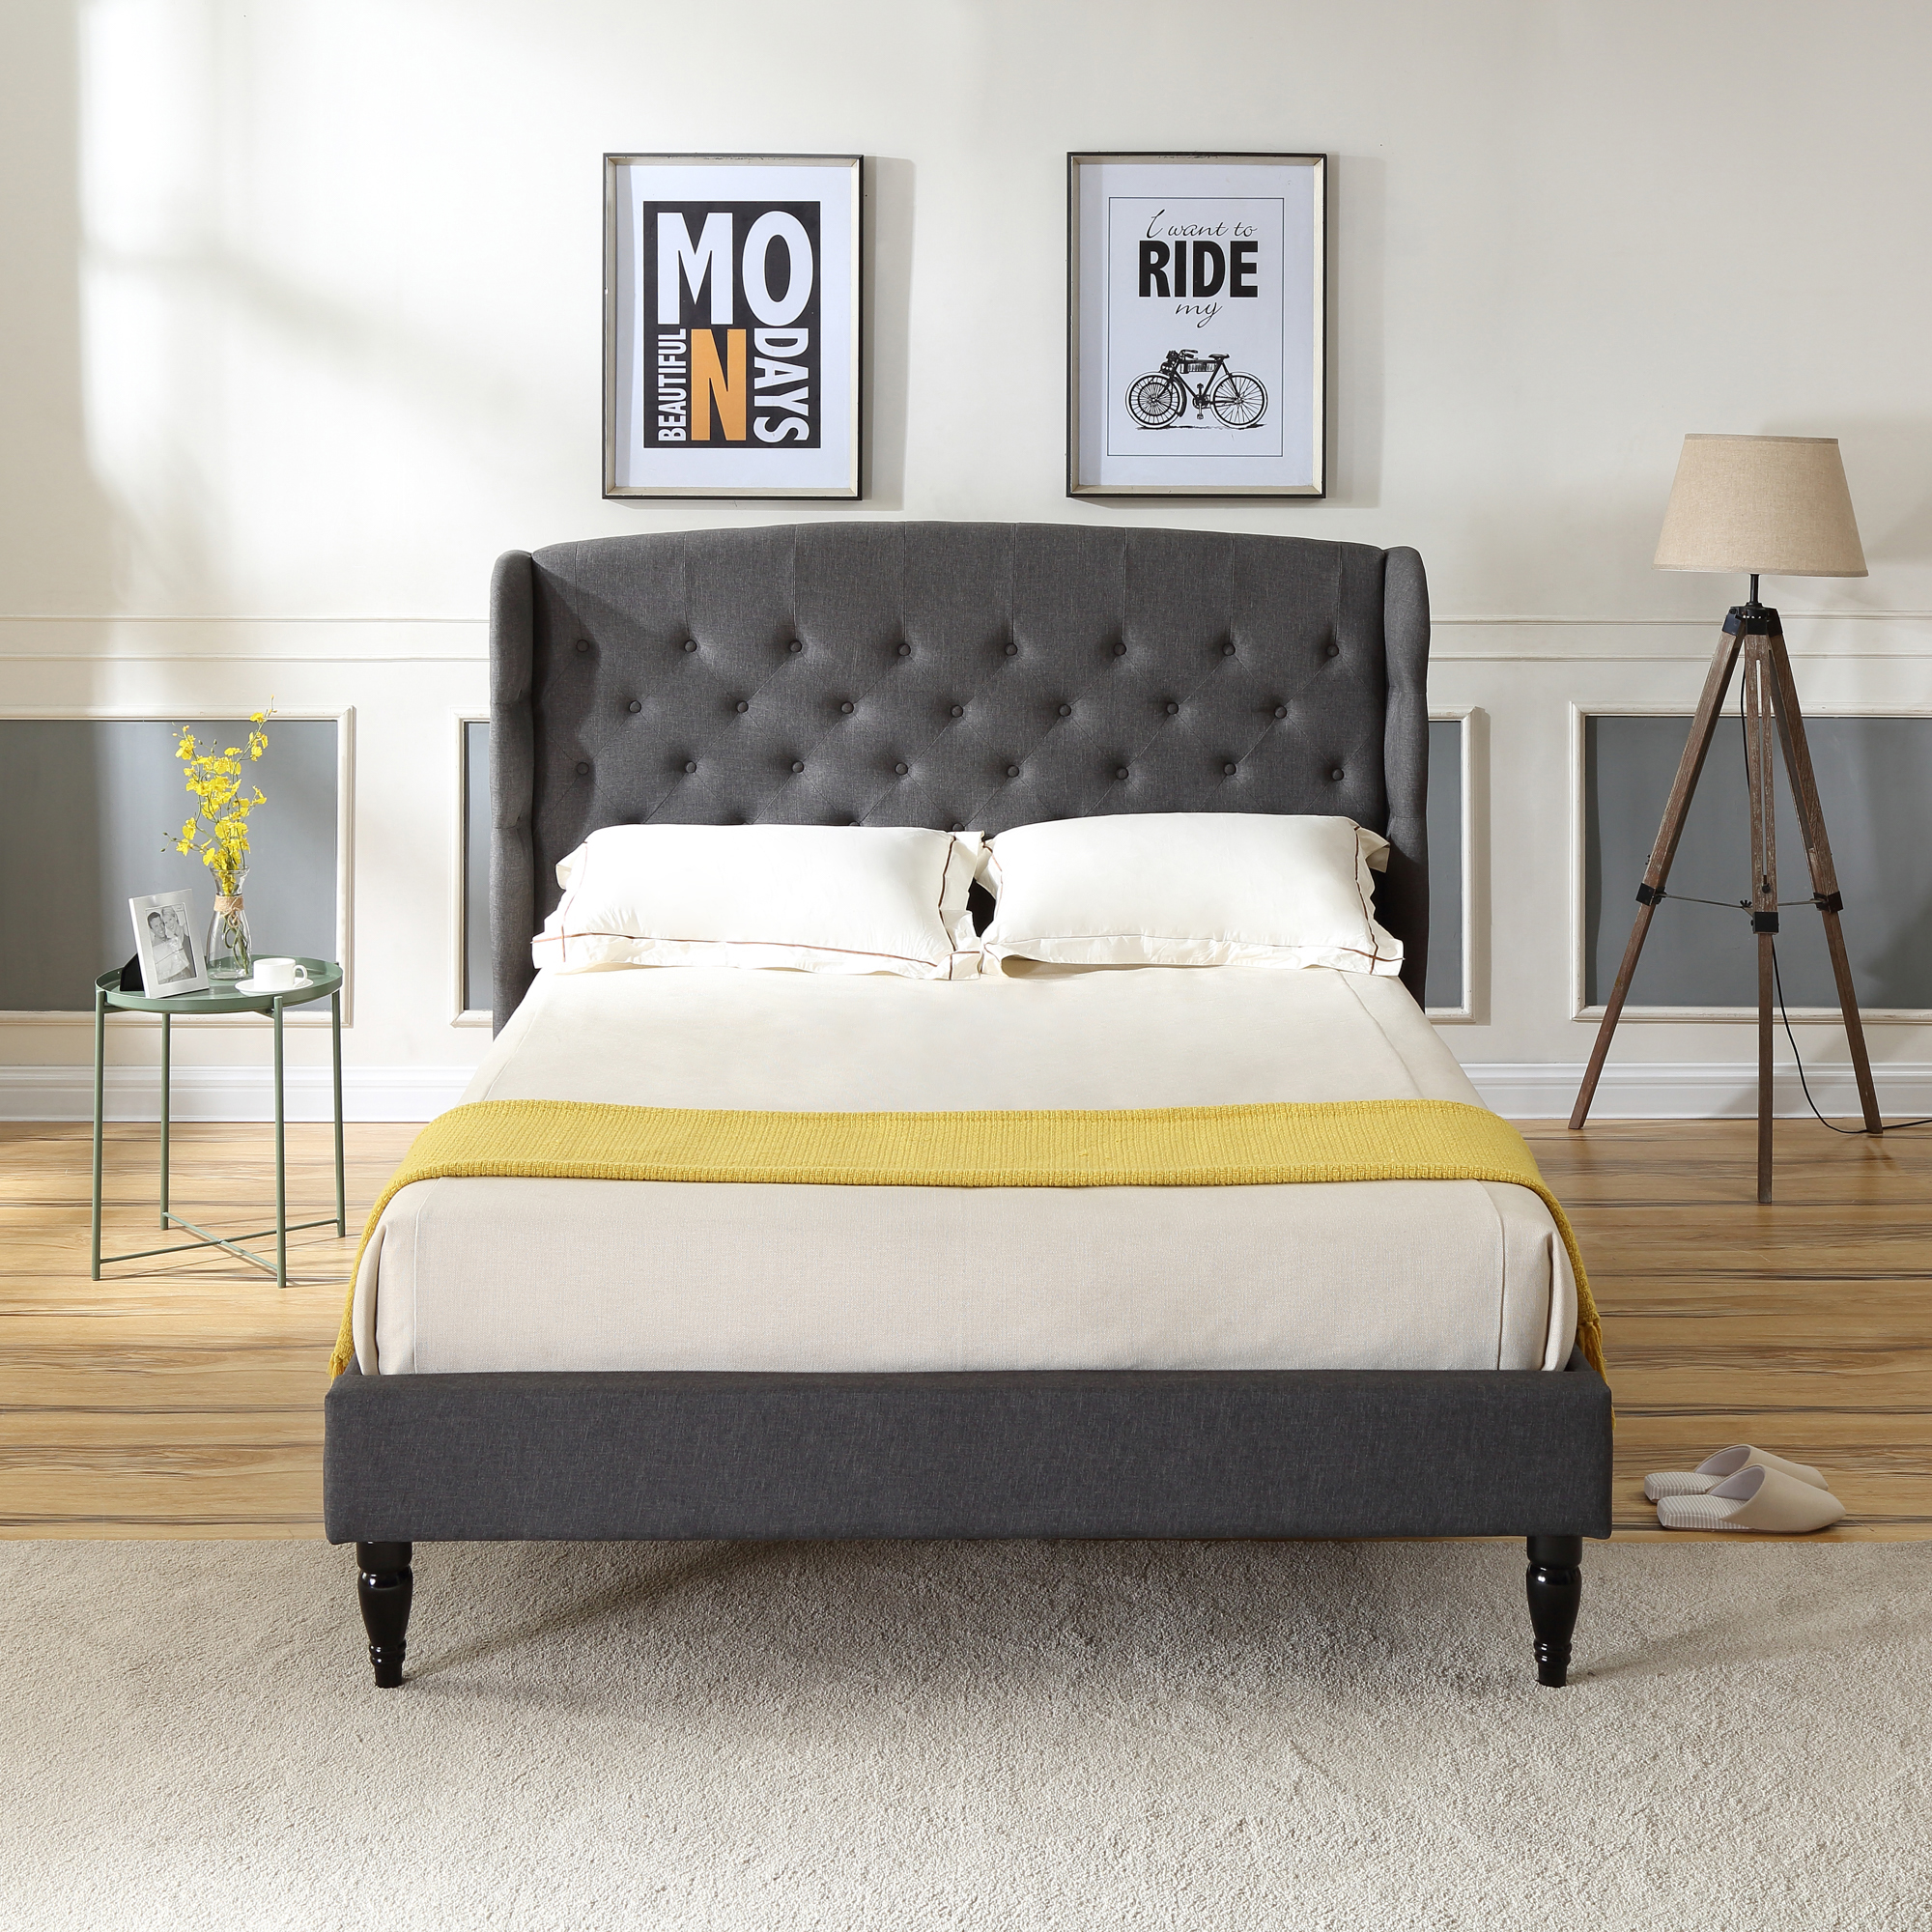 Modern Sleep Brighton Upholstered Platform Bed | Headboard and Wood Frame with Wood Slat Support | Grey, Multiple Sizes